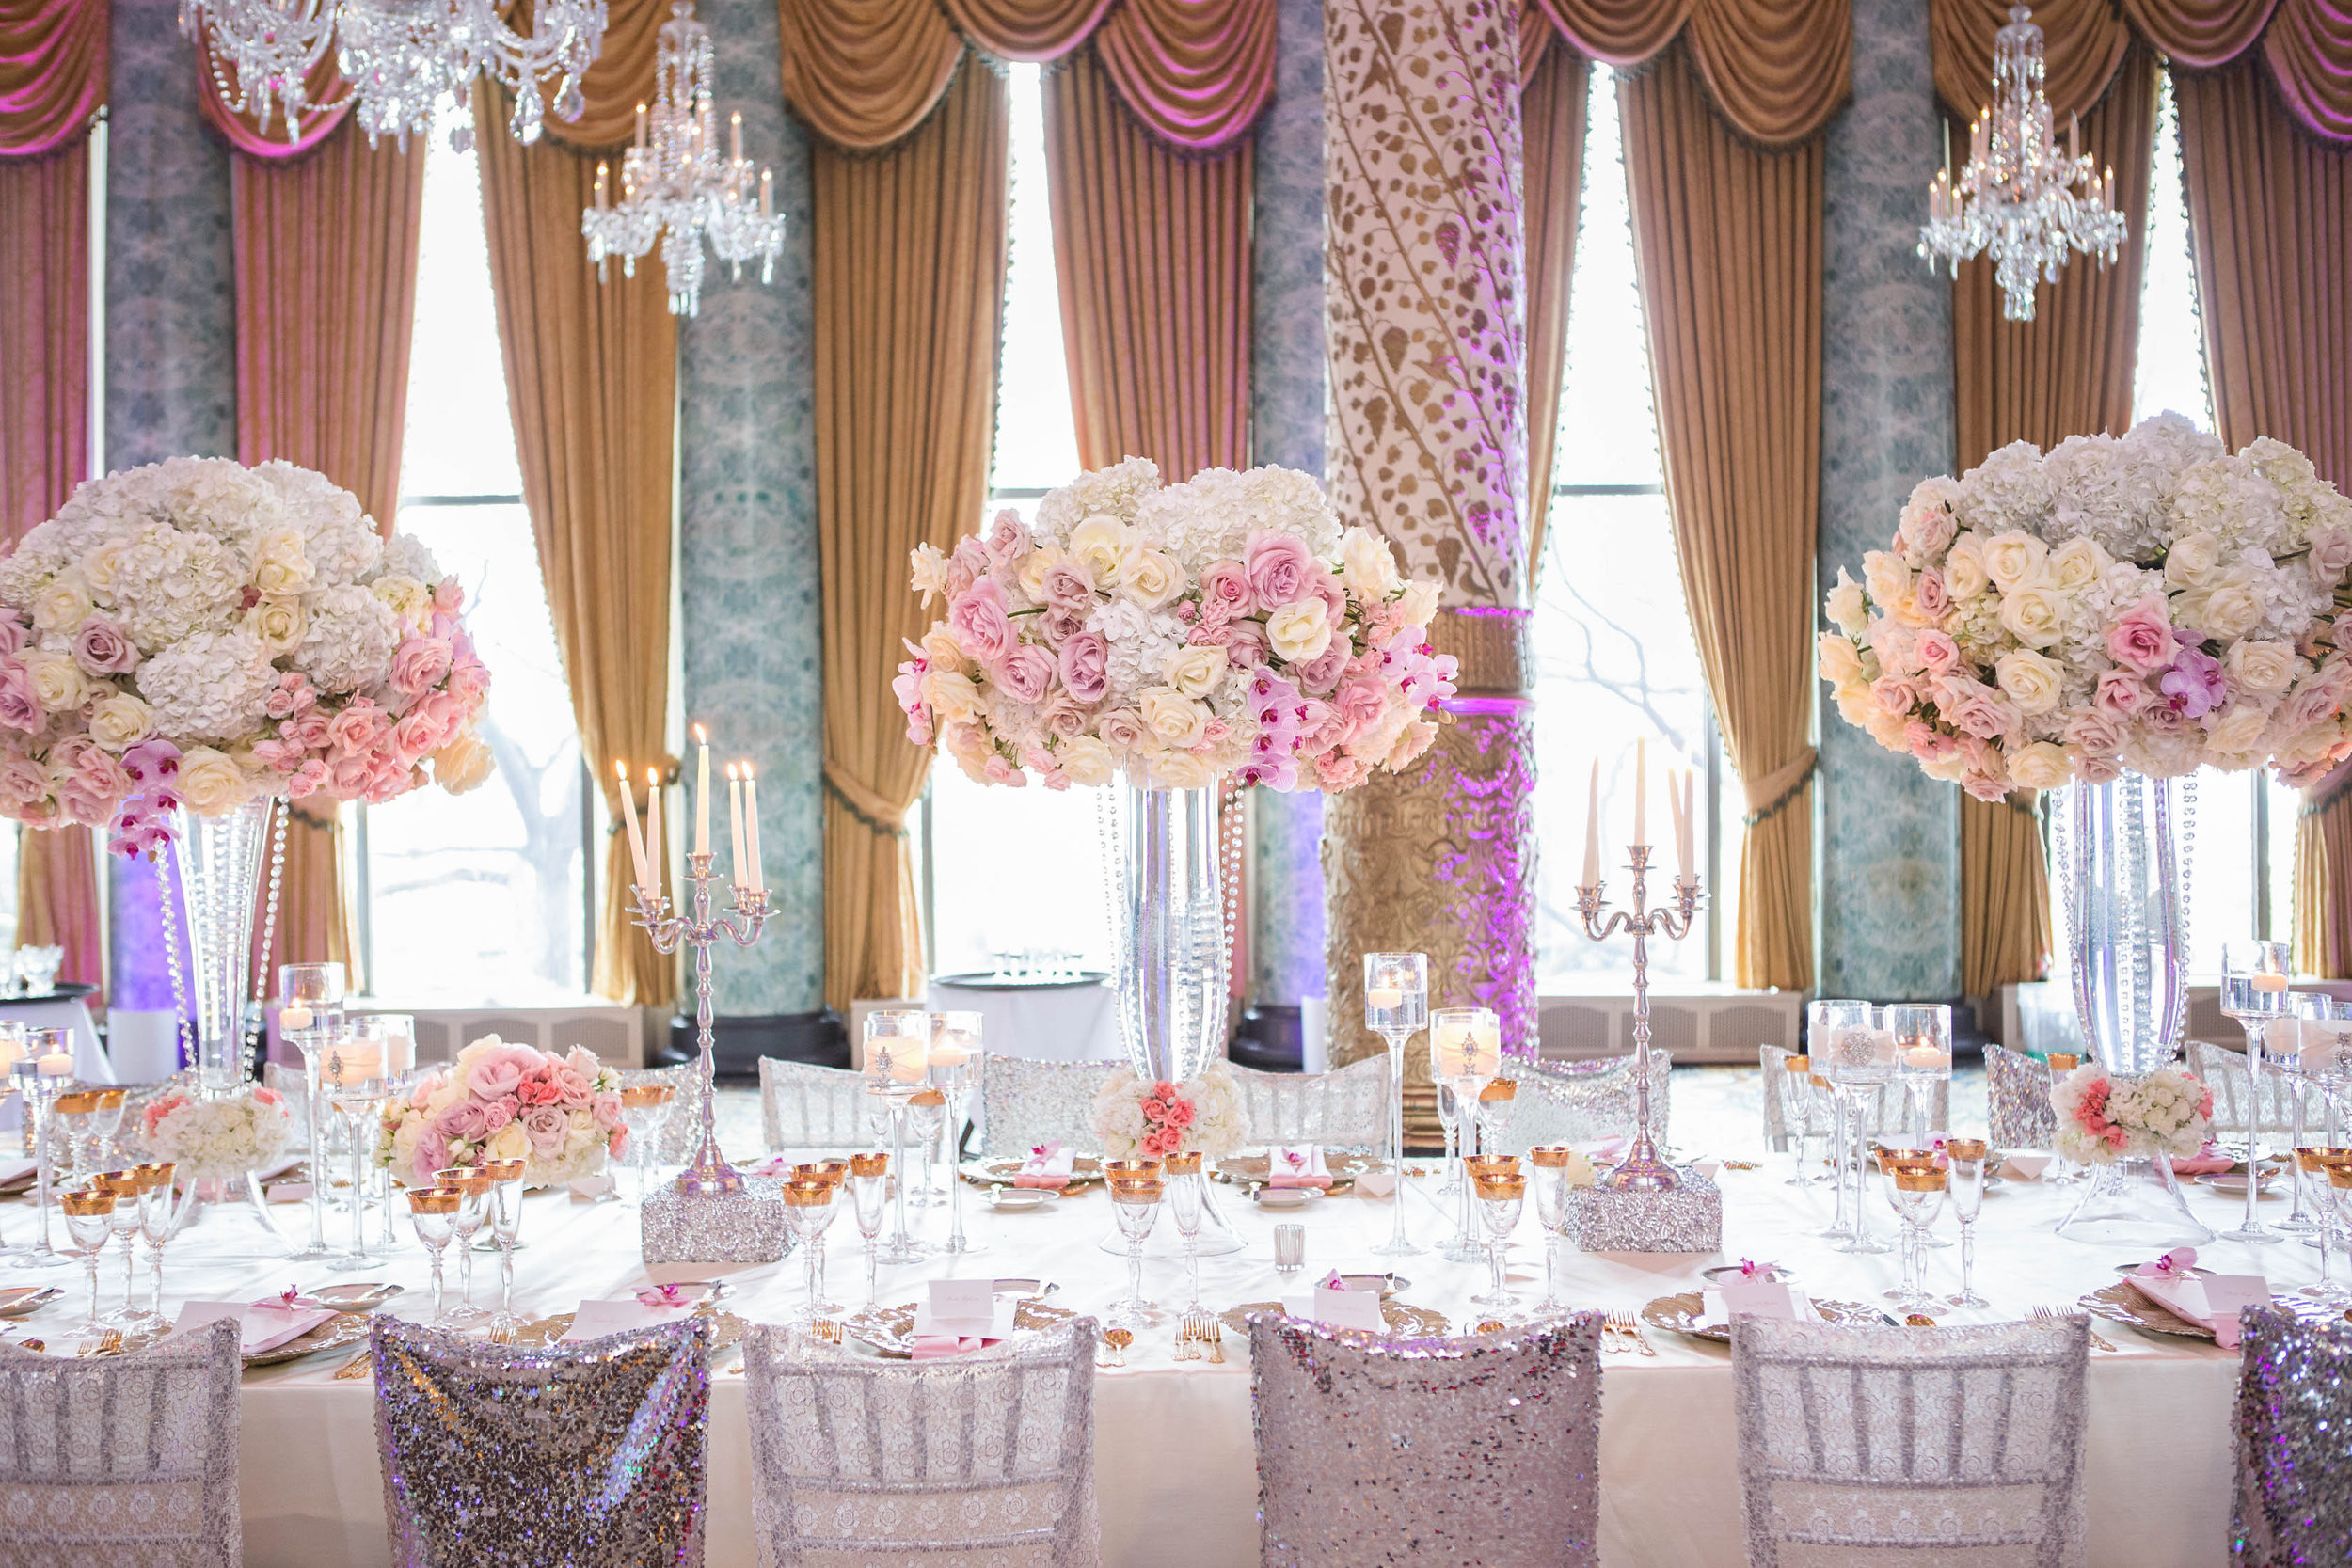 Wedding Table Decorations Lovely Wedding Ideas Long Reception Tables Belle the Magazine Of Delightful 41 Ideas Wedding Table Decorations